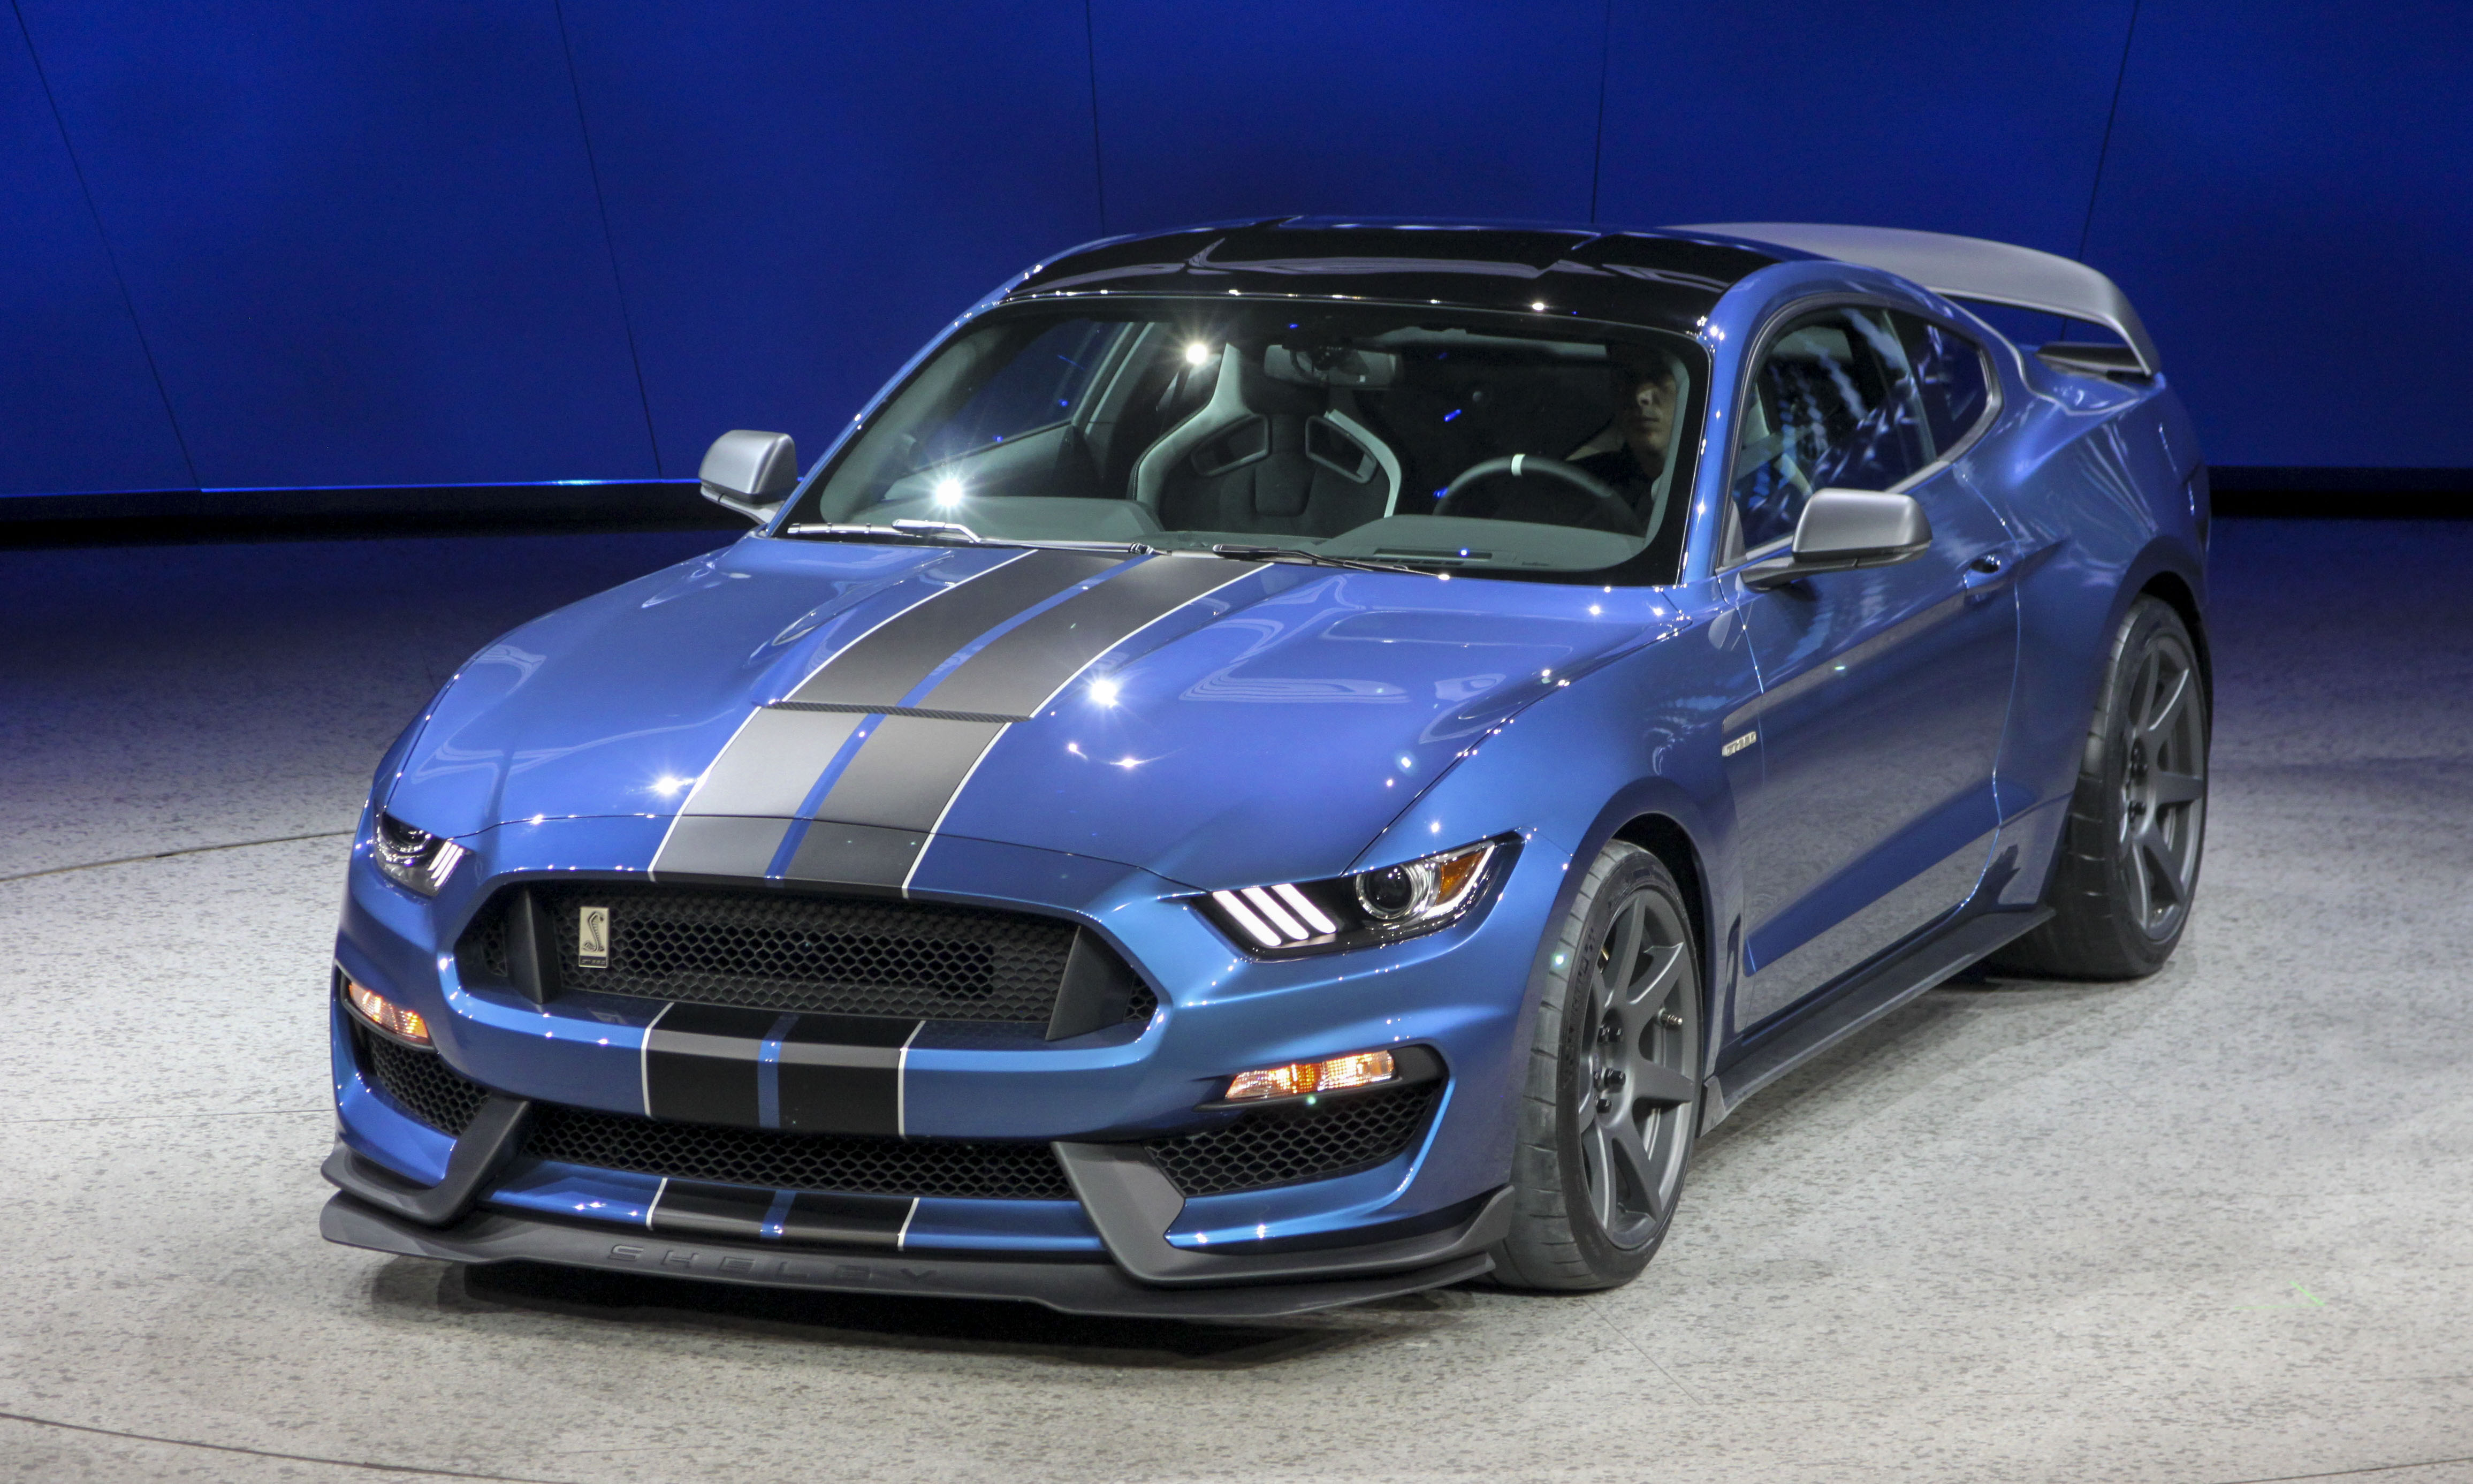 Shelby GT350R Mustang (c) Perry Stern